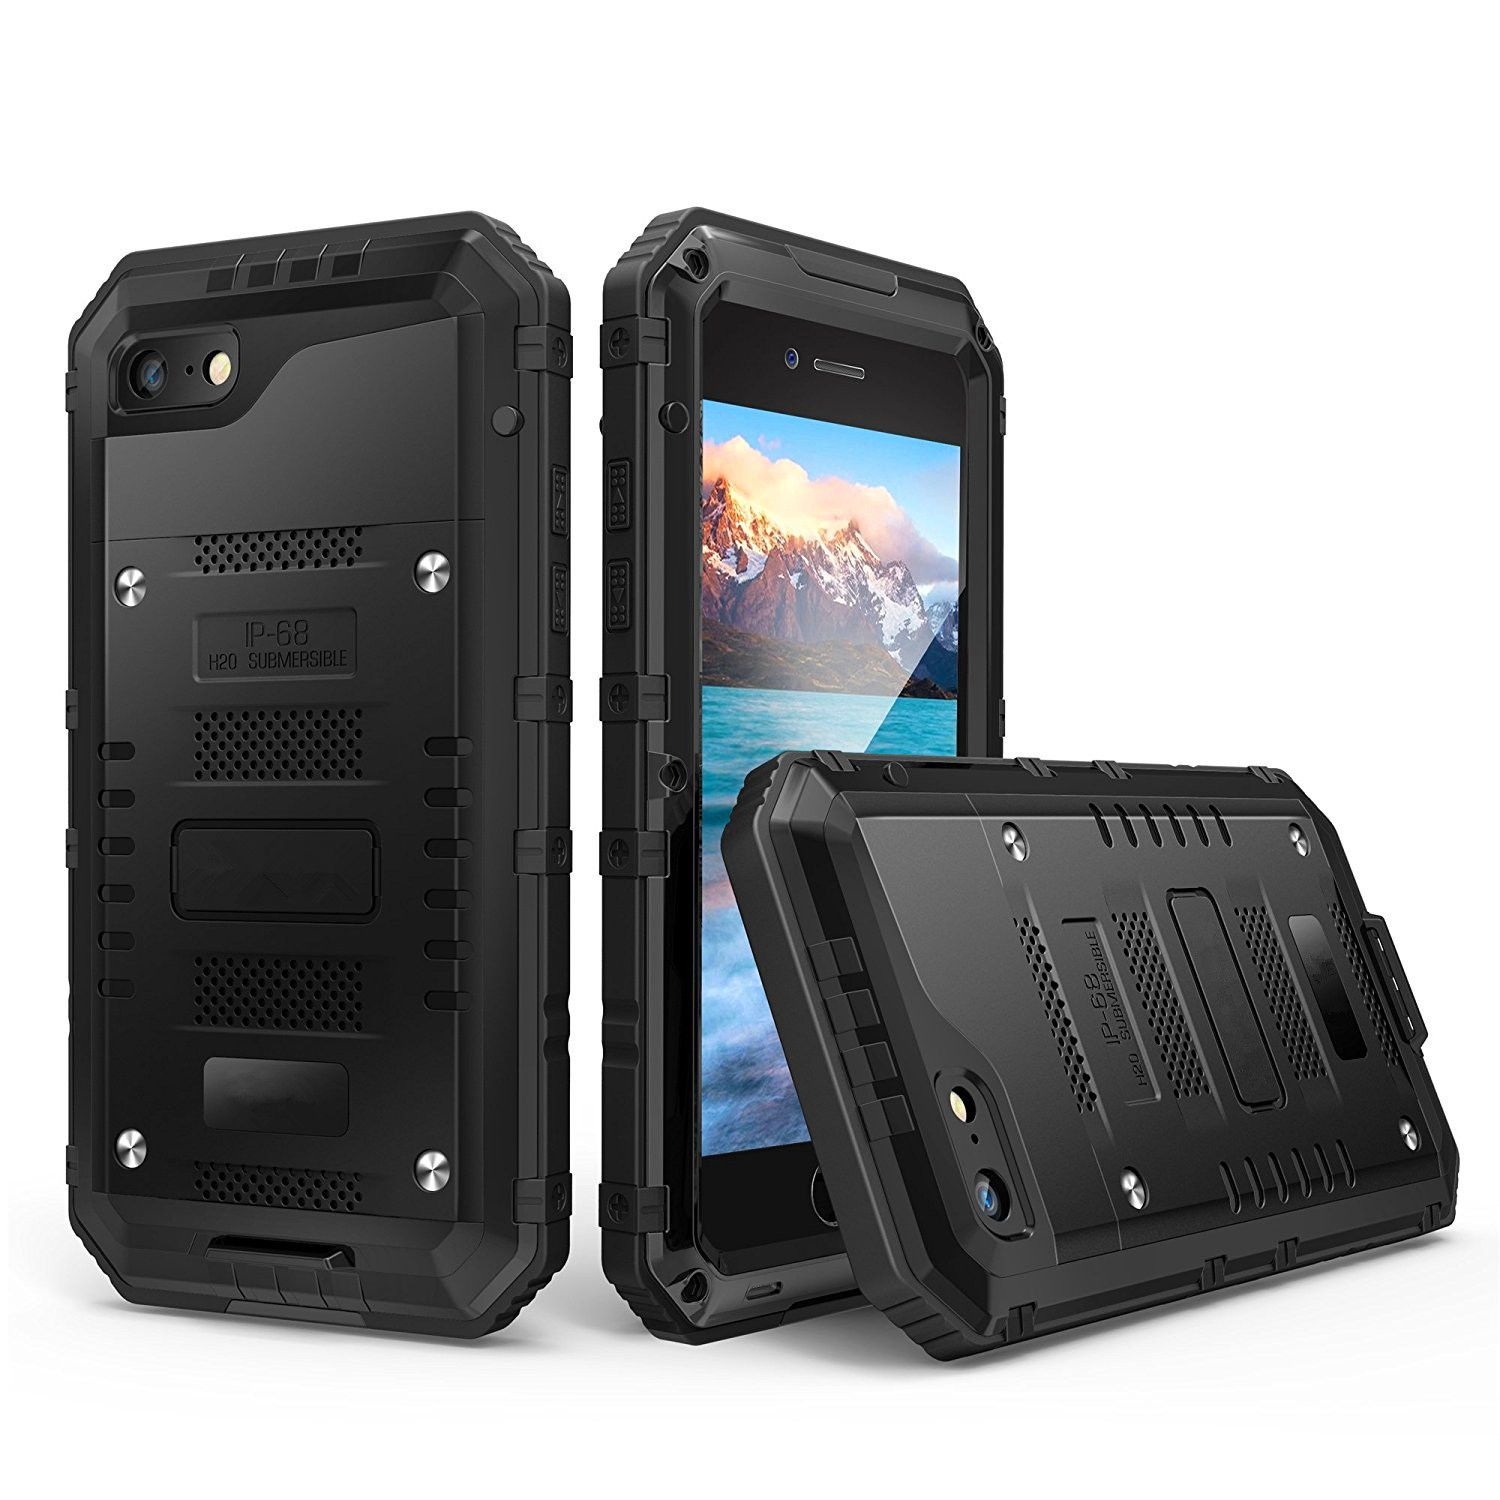 Shockproof Waterproof <font><b>IP68</b></font> Heavy Duty Hybrid Tough Rugged Armor Metal Phone Case for iPhone X 8 7 6 6s Plus 5 5s SE Cover Coque